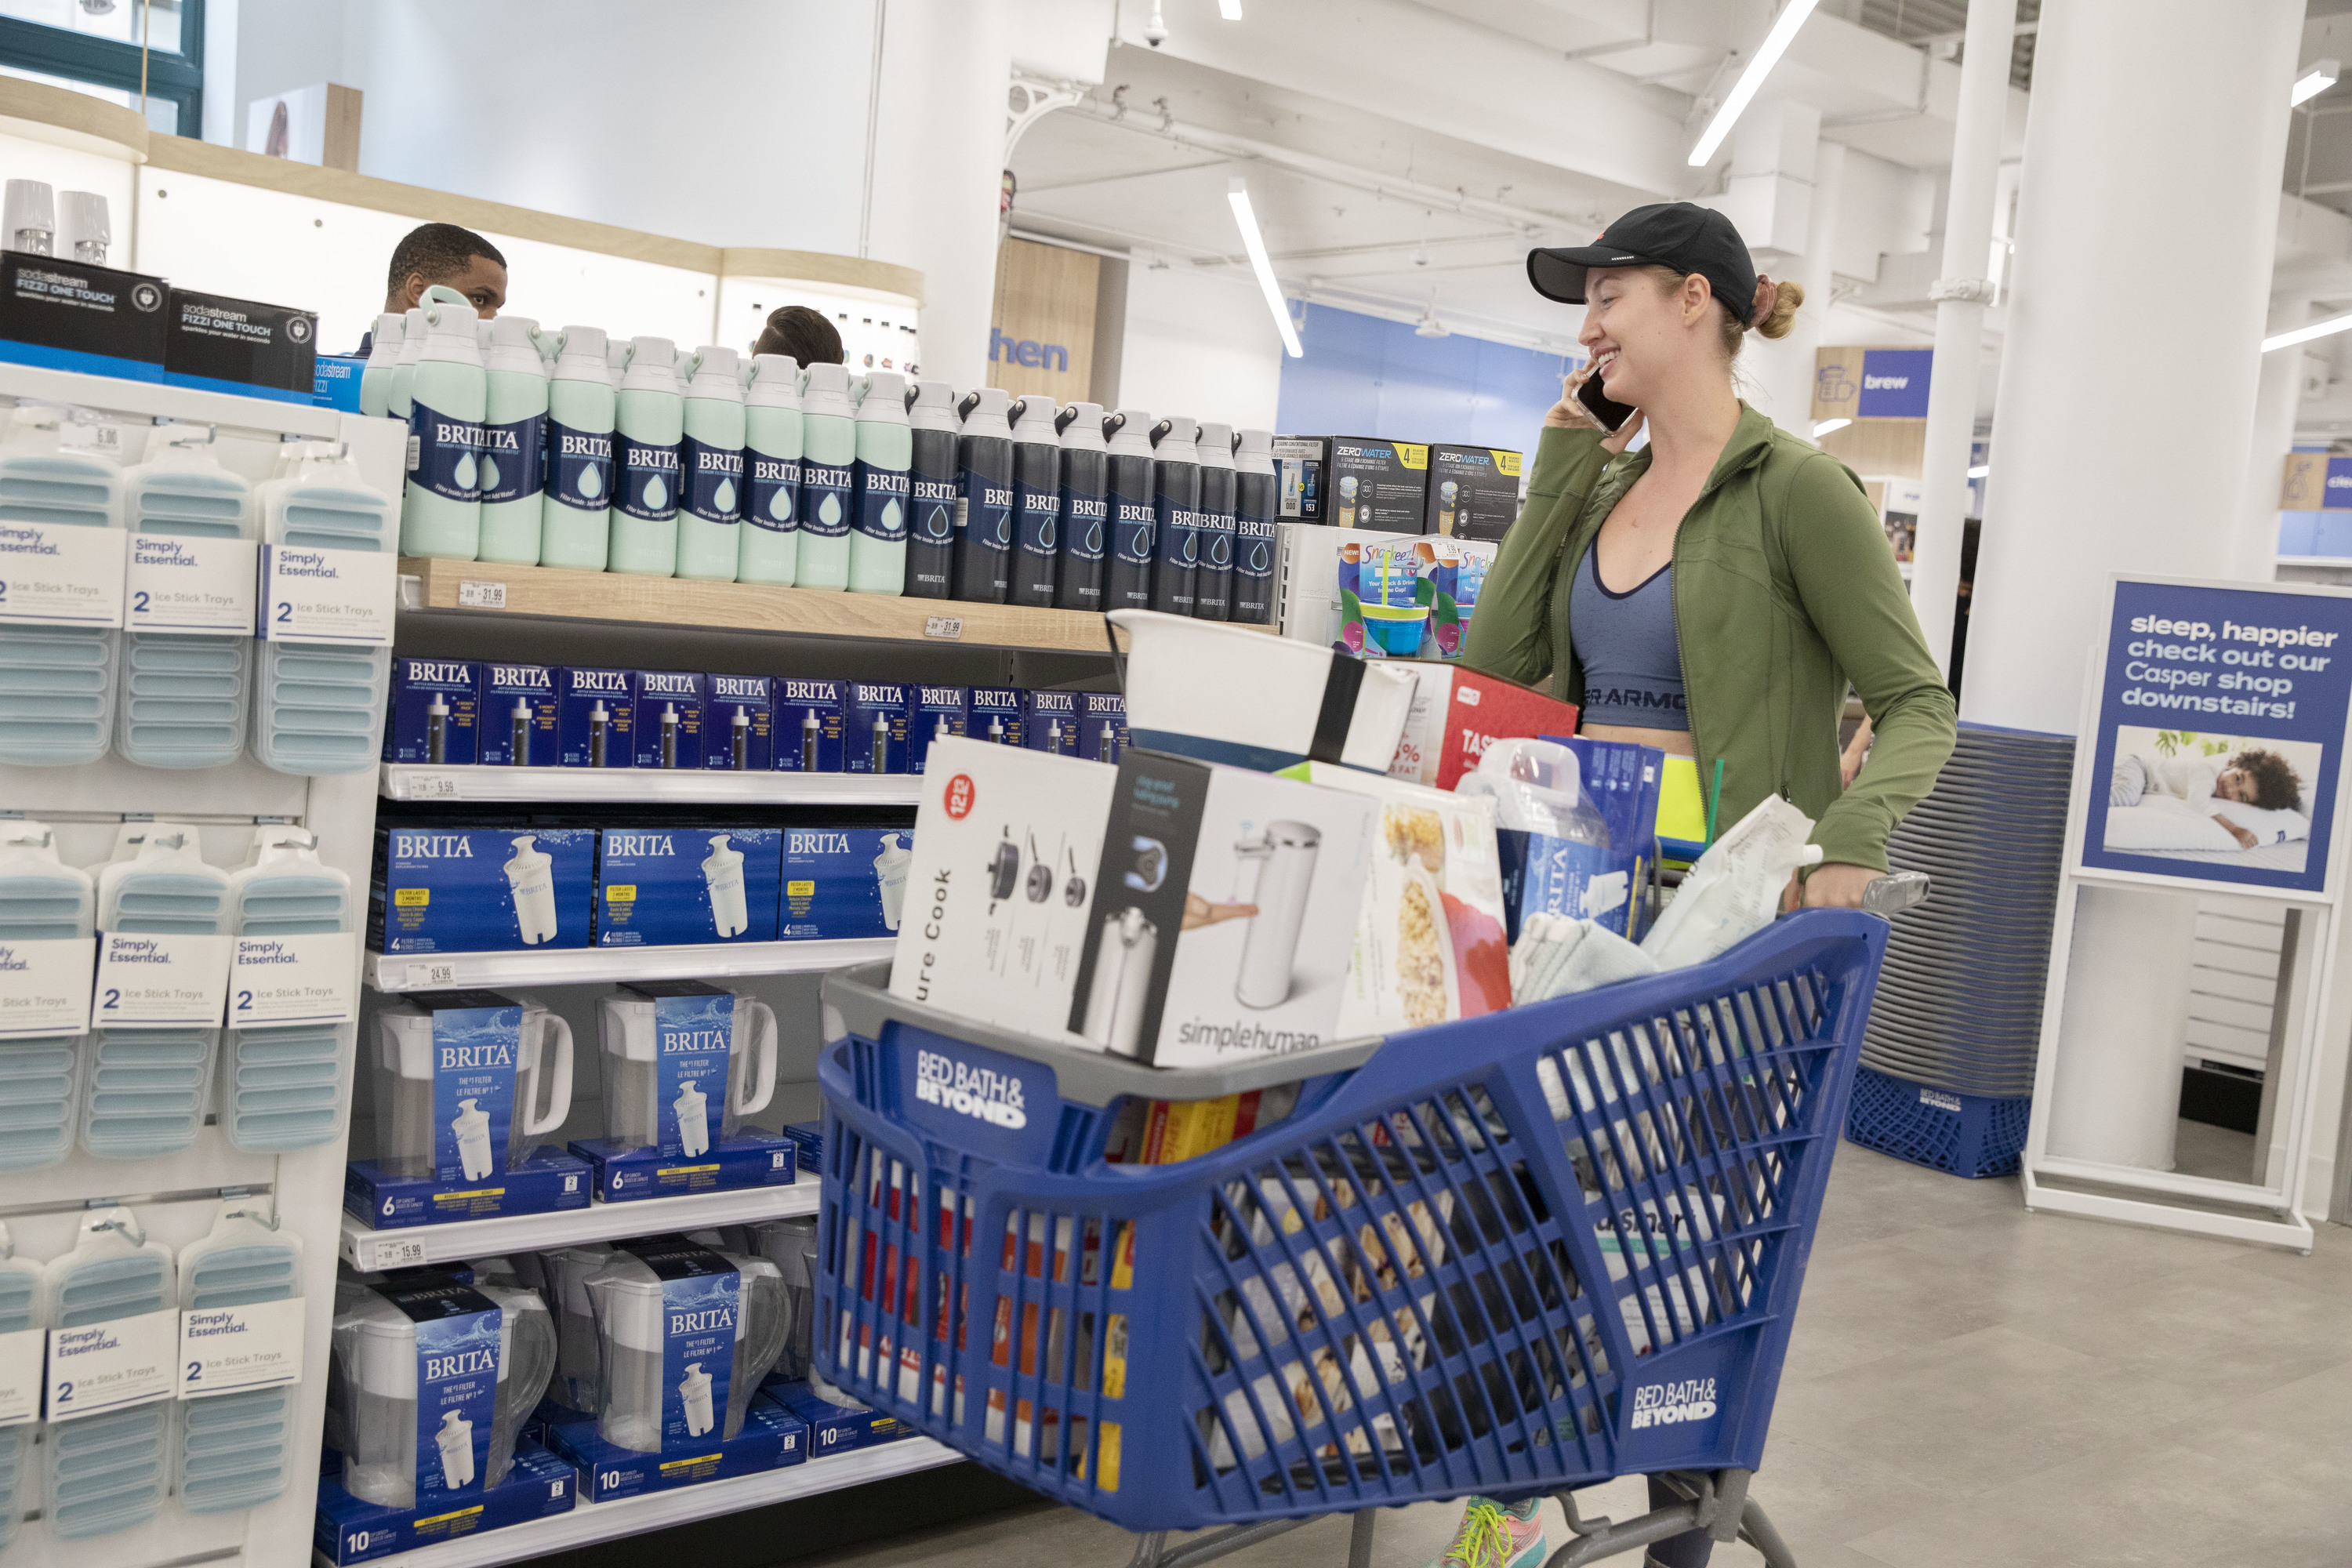 Finally—The Bed Bath & Beyond on Sixth Ave has officially reopened